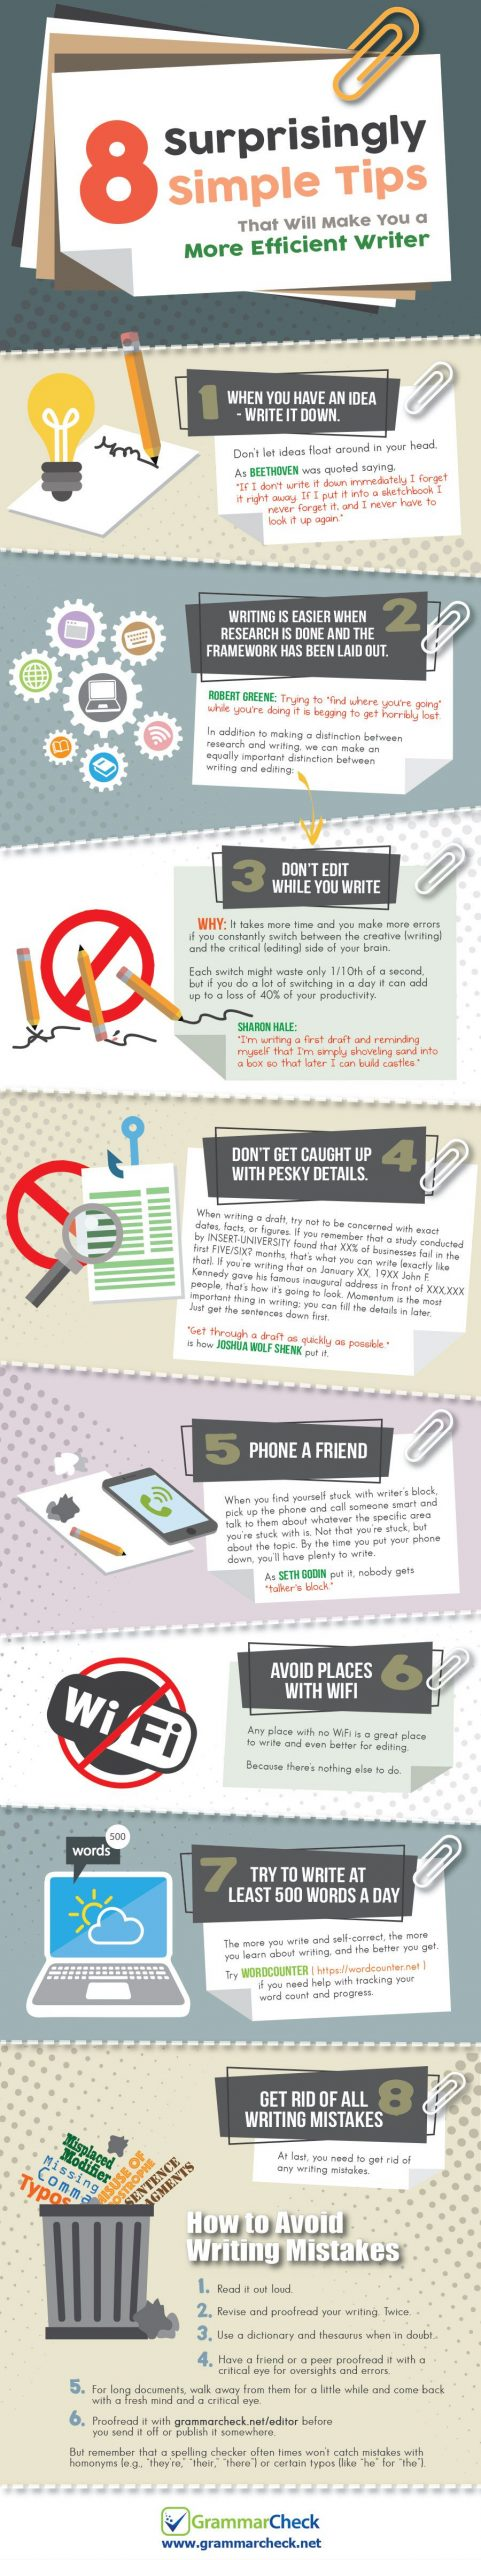 8 surprisingly simple tips to be a more efficient writer [Infographic]